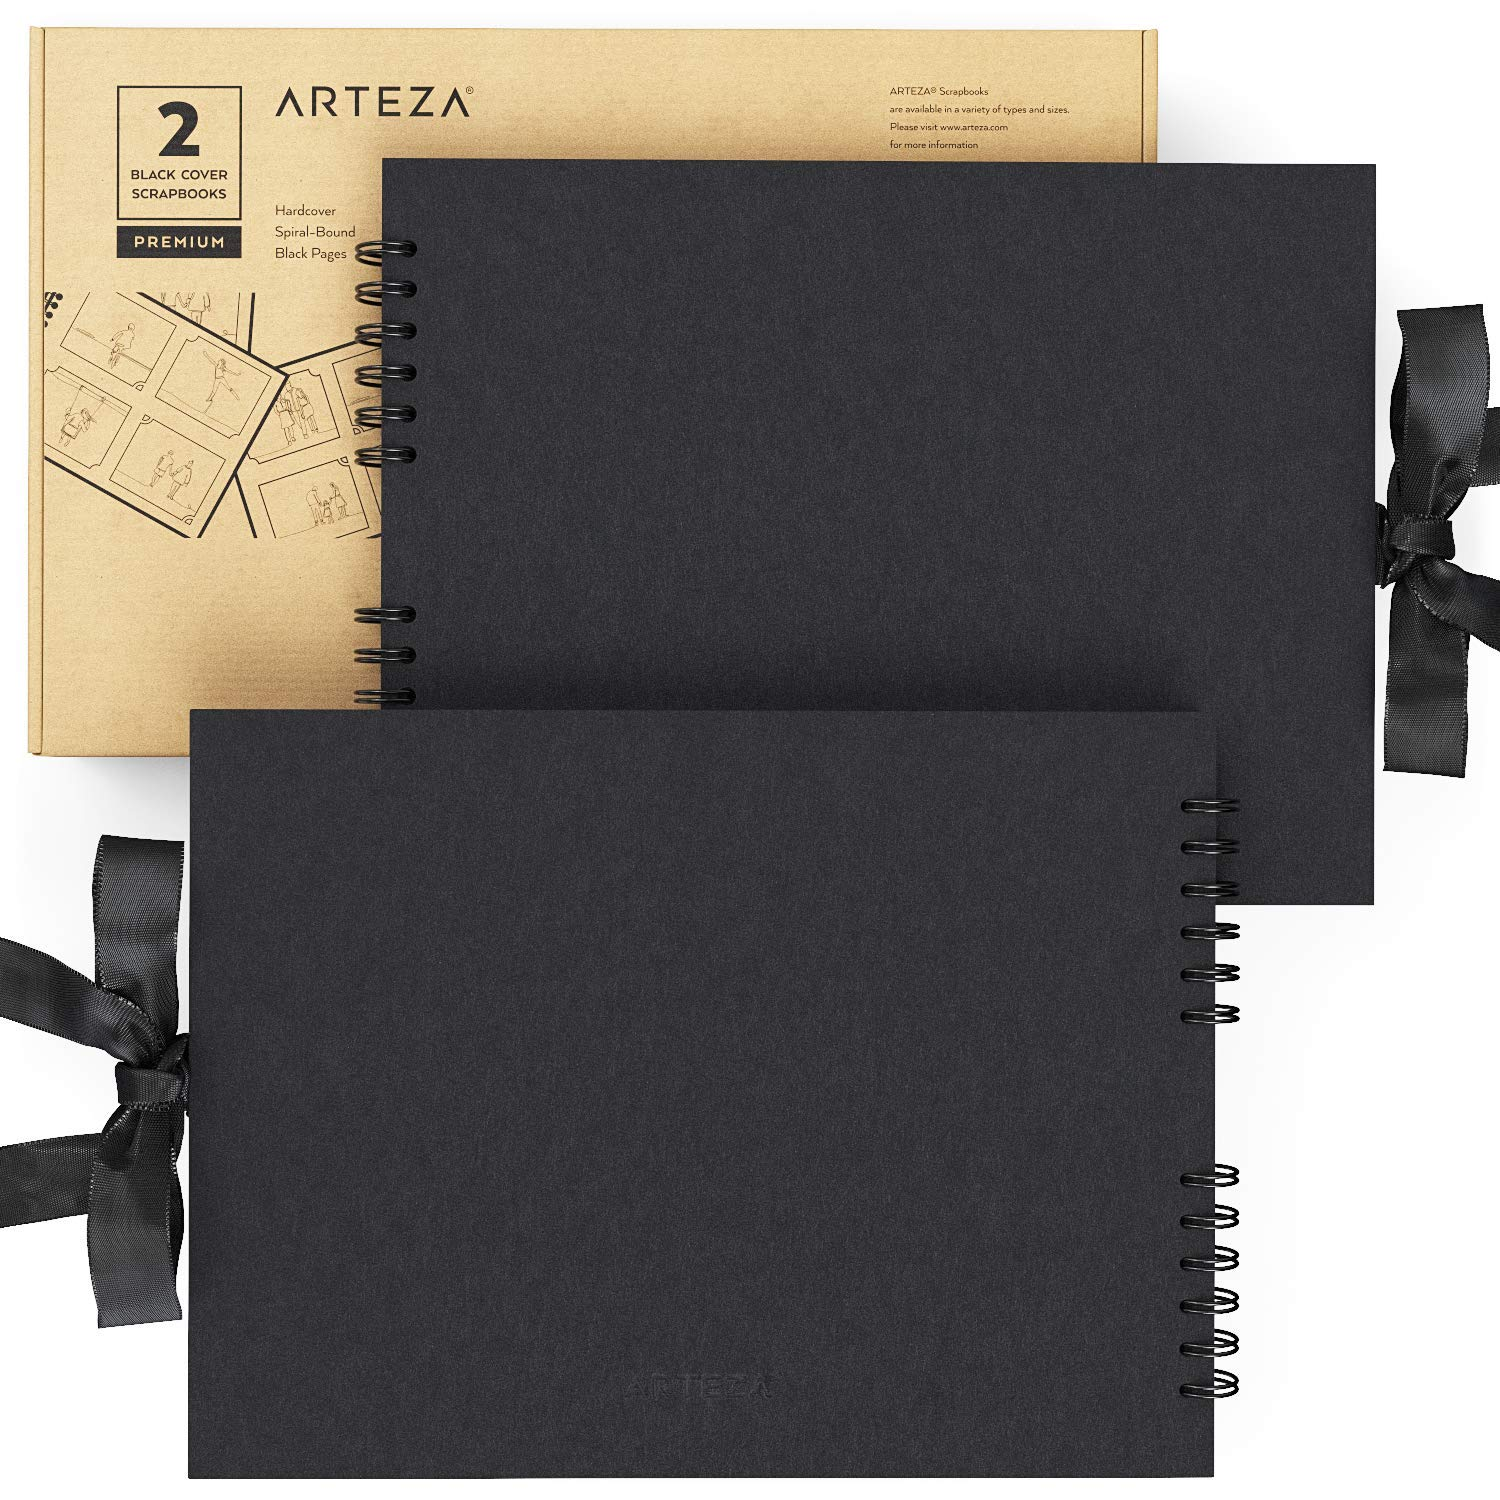 Arteza 8.5x11'' Scrapbook Album Pack of 2, Black Cover, 40 Black Sheets, Spiral Bound, 250 GSM for DIY, Anniversary, Wedding Guest Book, Travelling, Artwork, Birthday, Holiday Gift